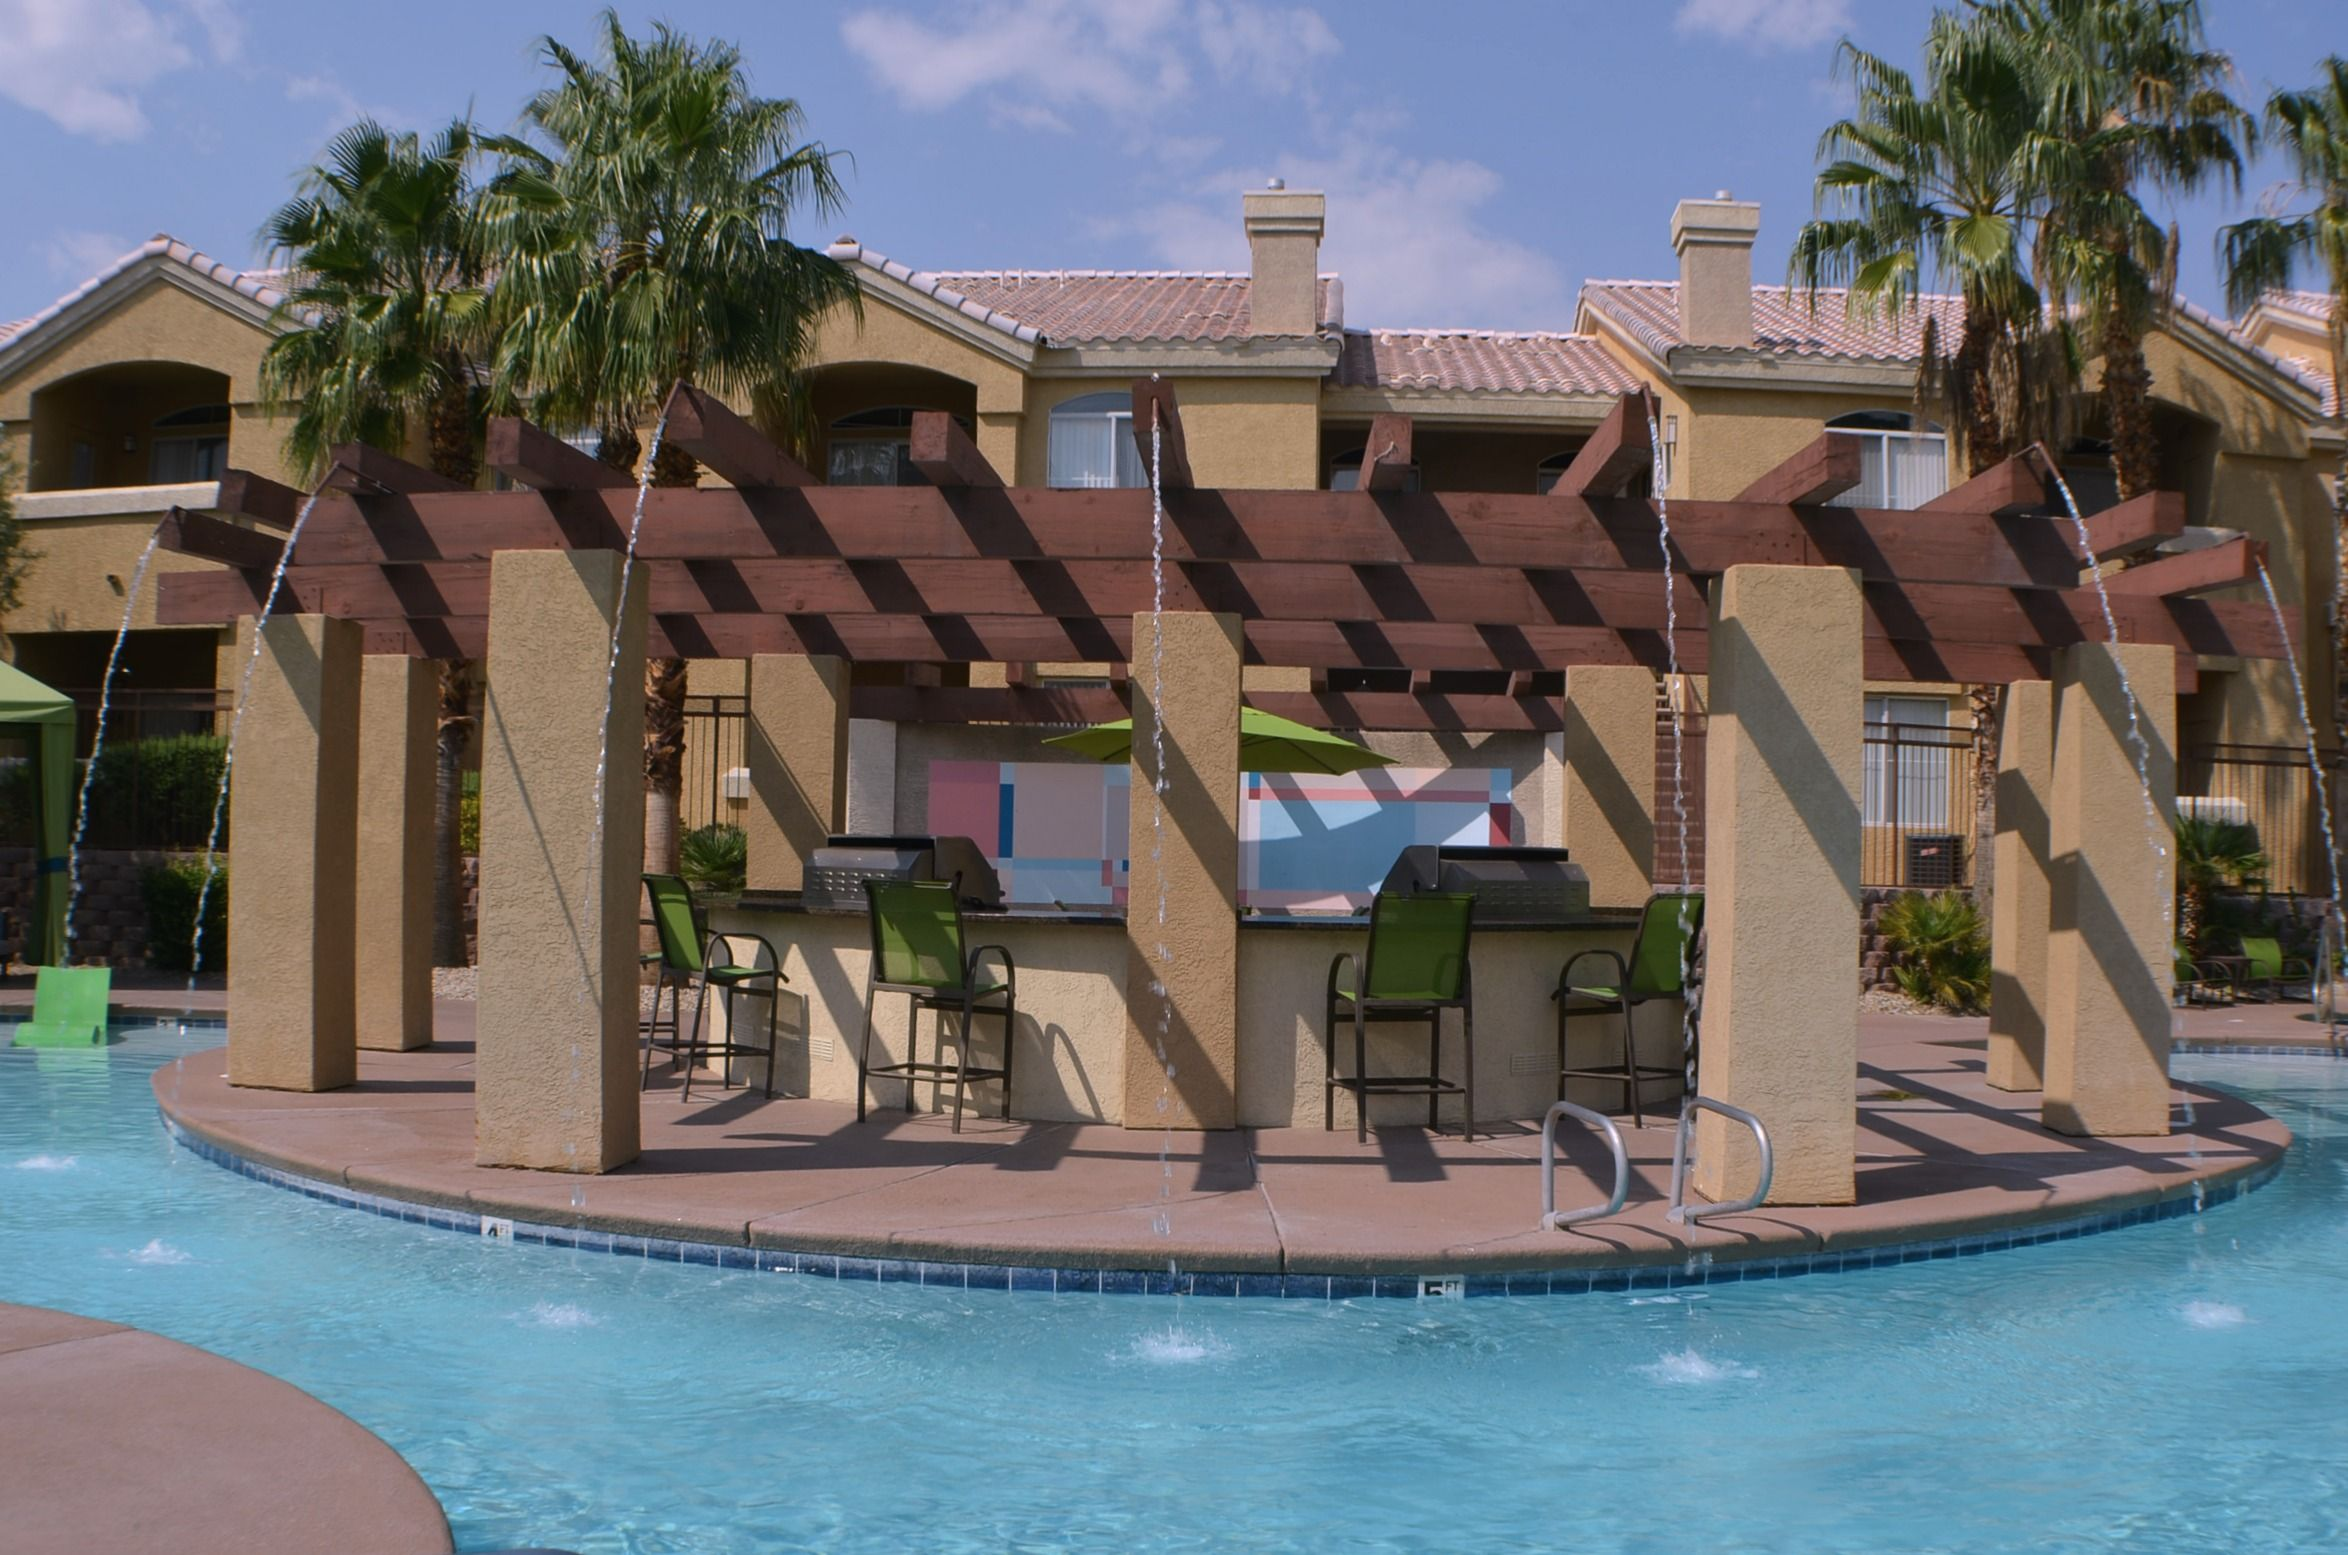 imagine spending time cooling off during desert summers at this amazing pool broadstone